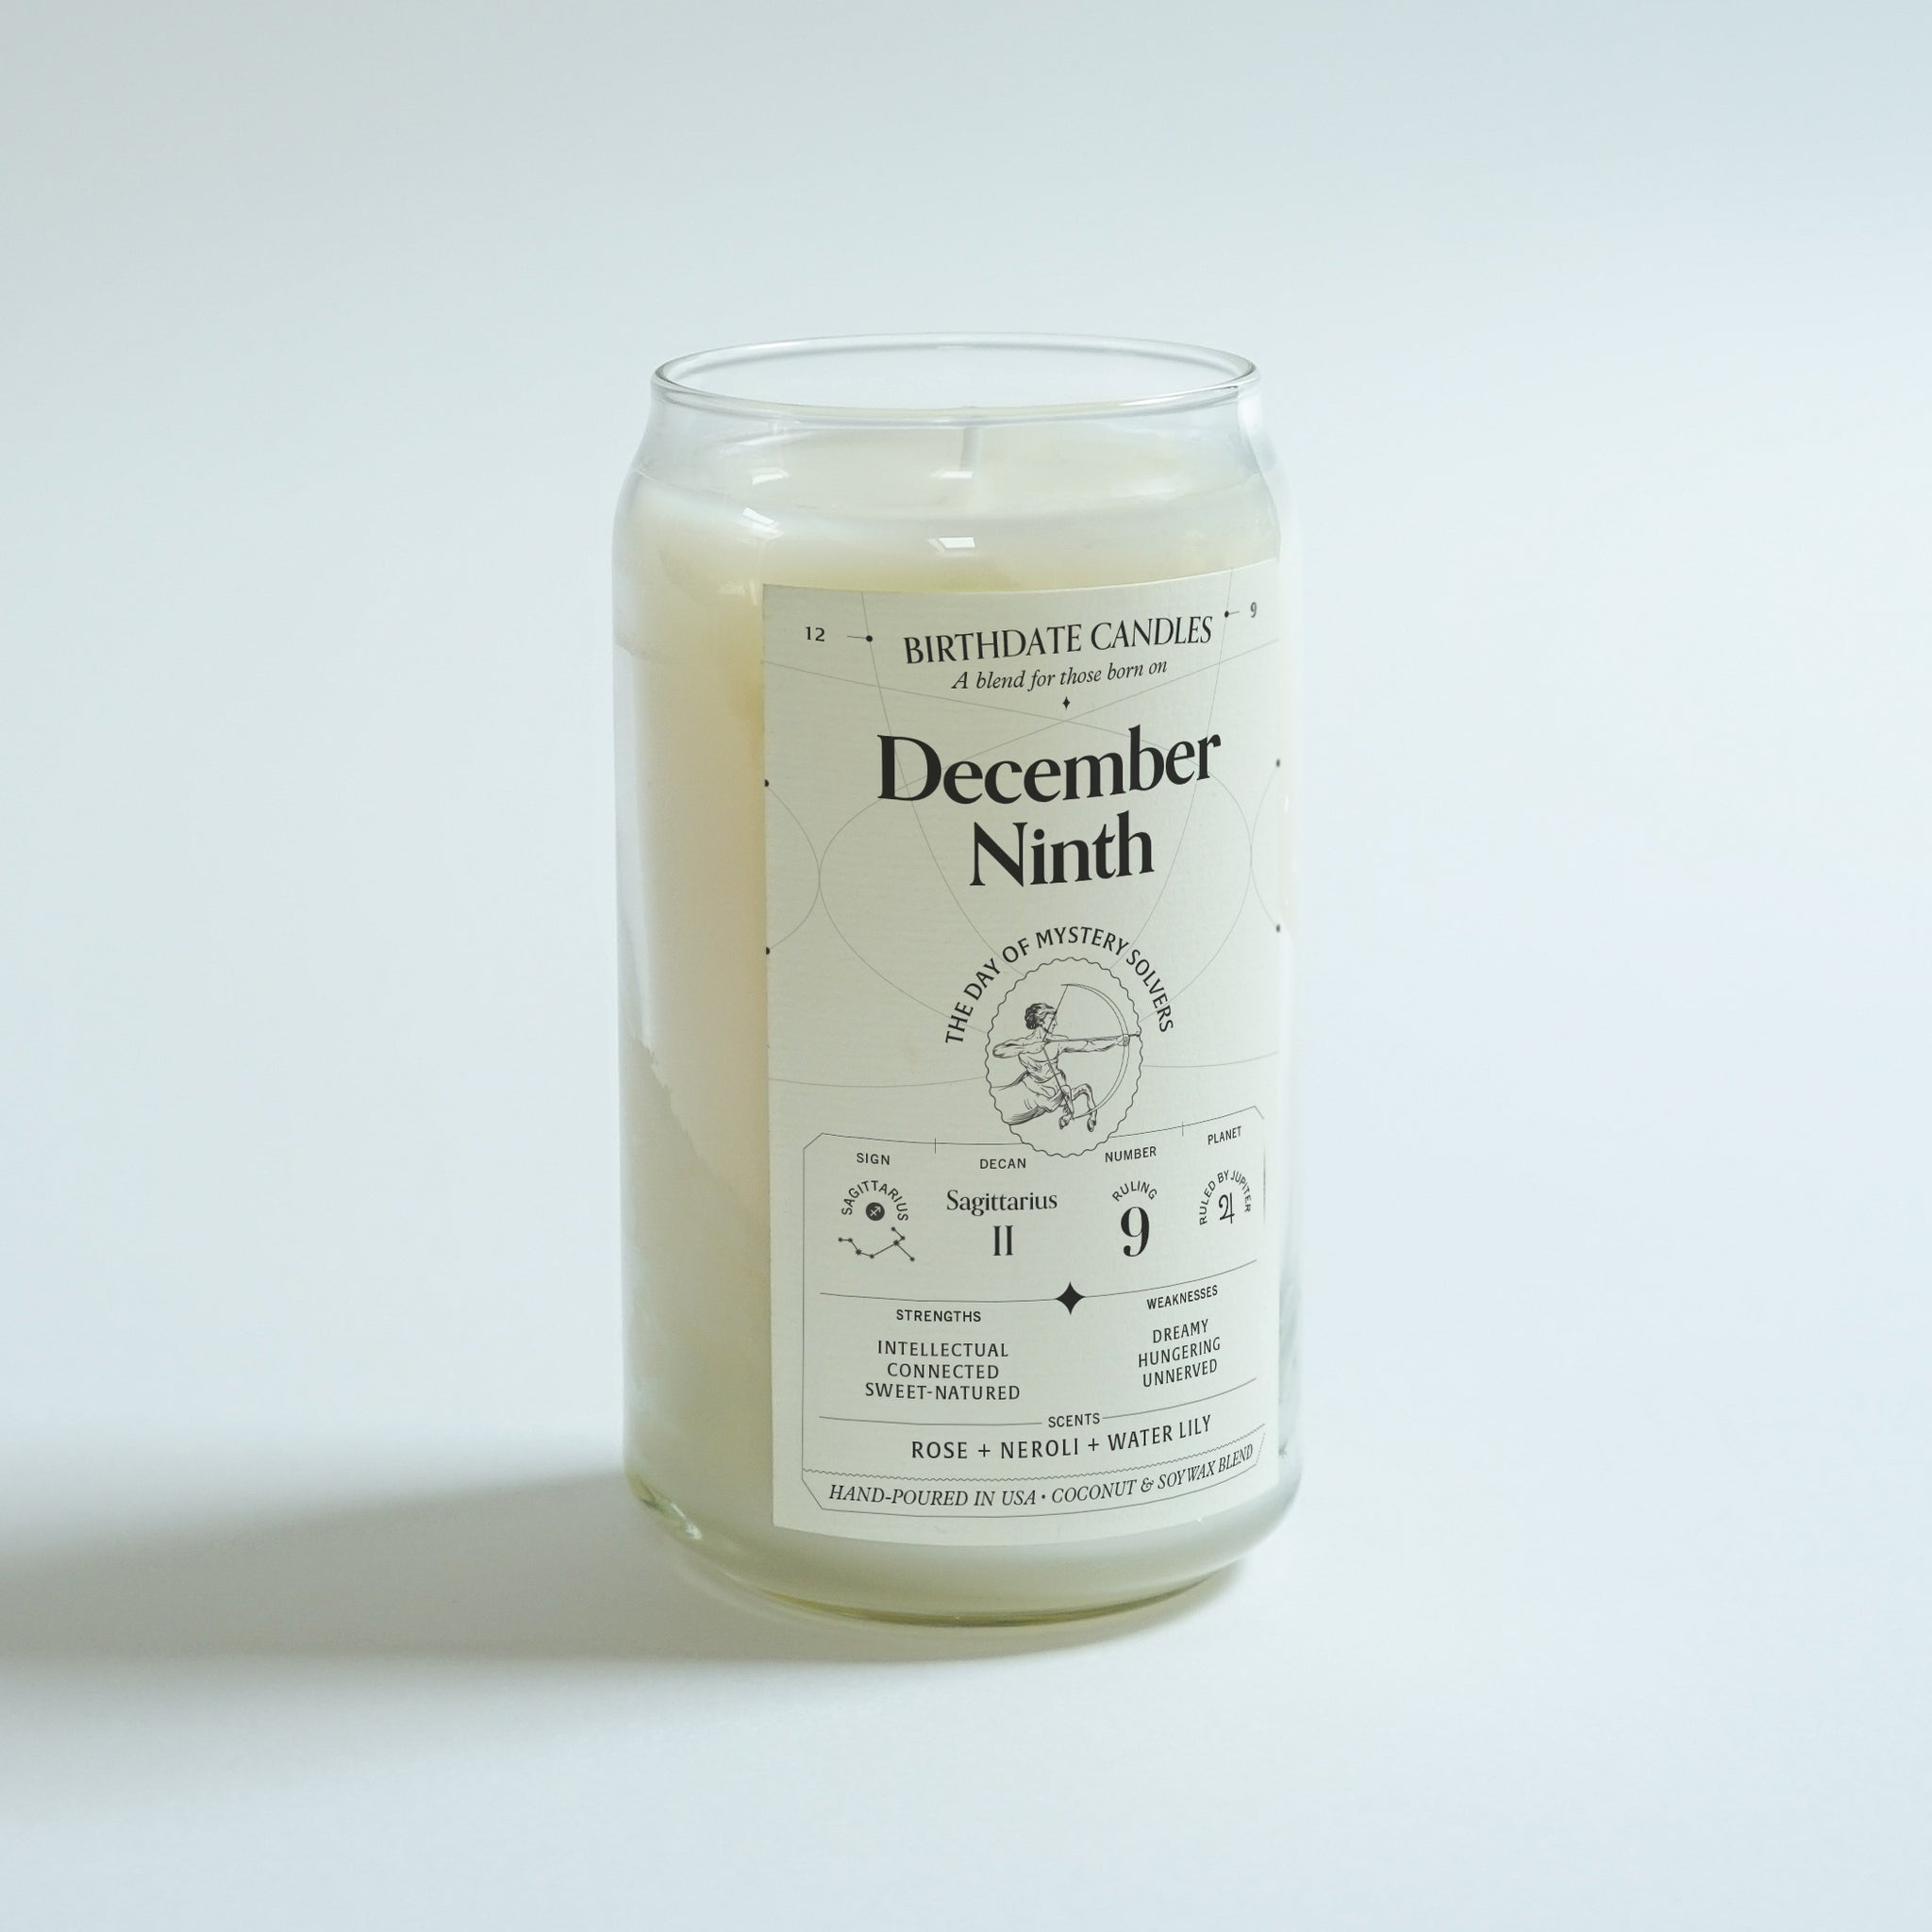 The December Ninth Candle